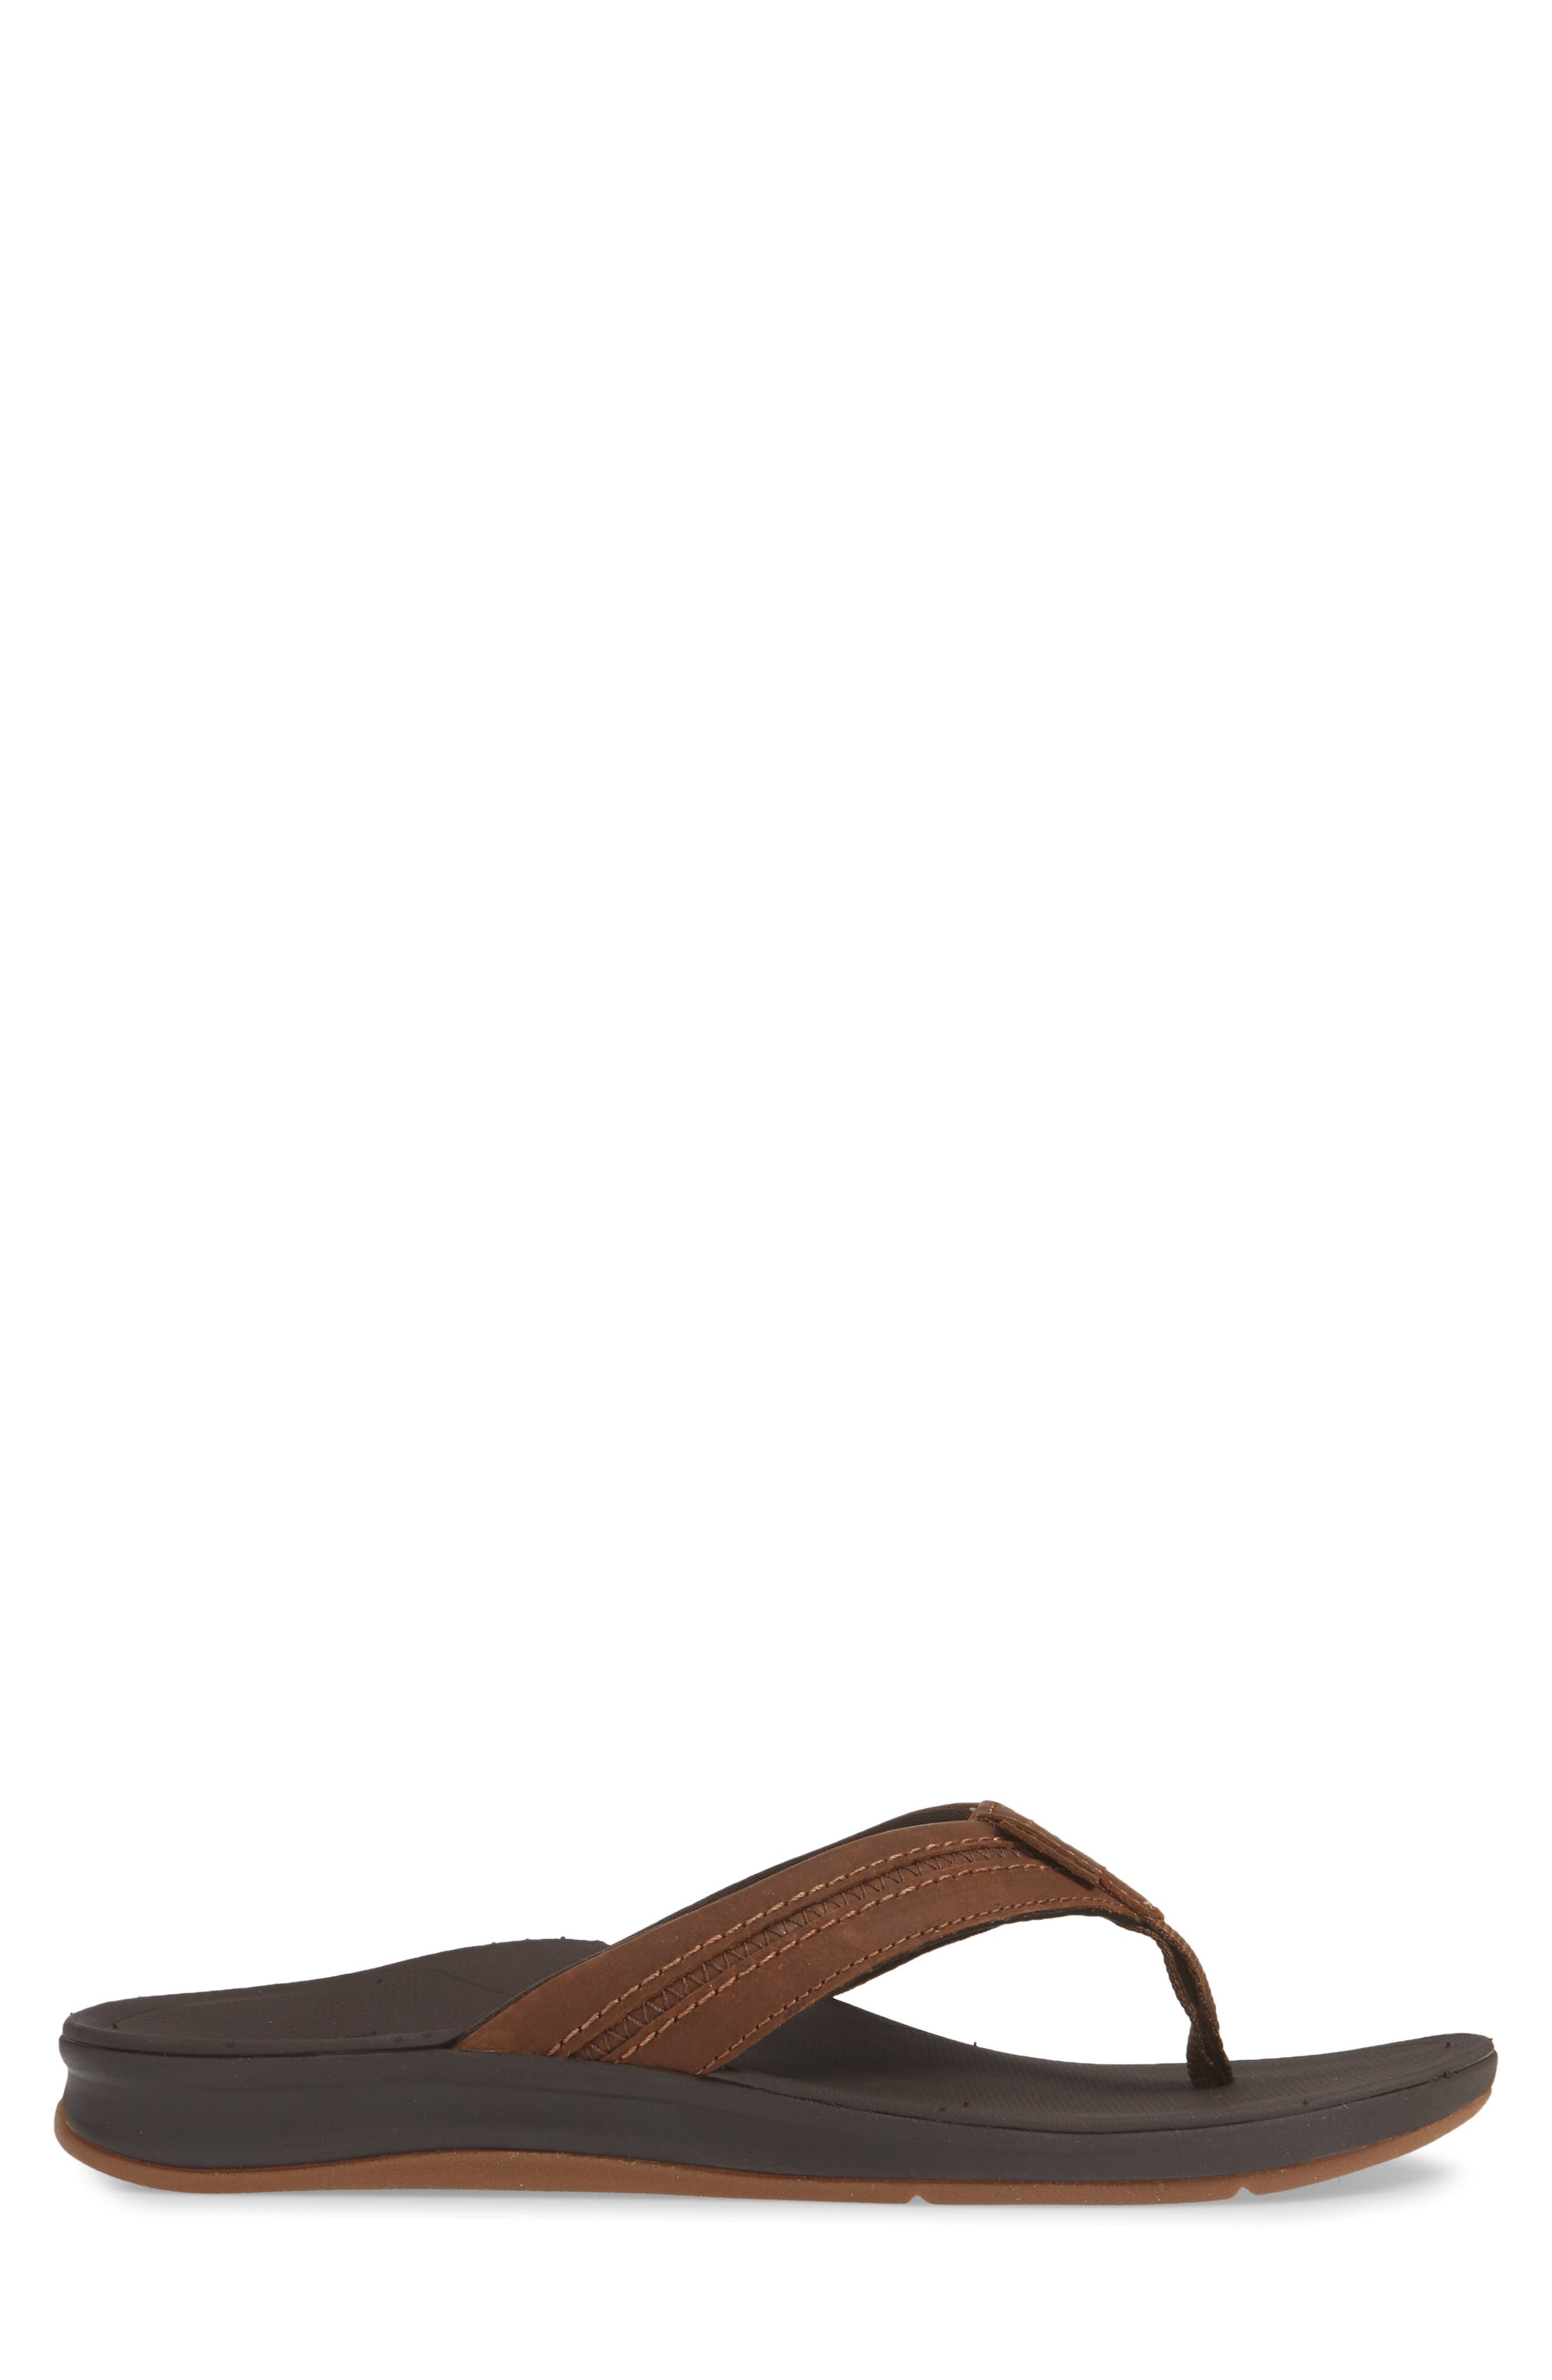 REEF, Ortho Bounce Coast Flip Flop, Alternate thumbnail 3, color, BROWN